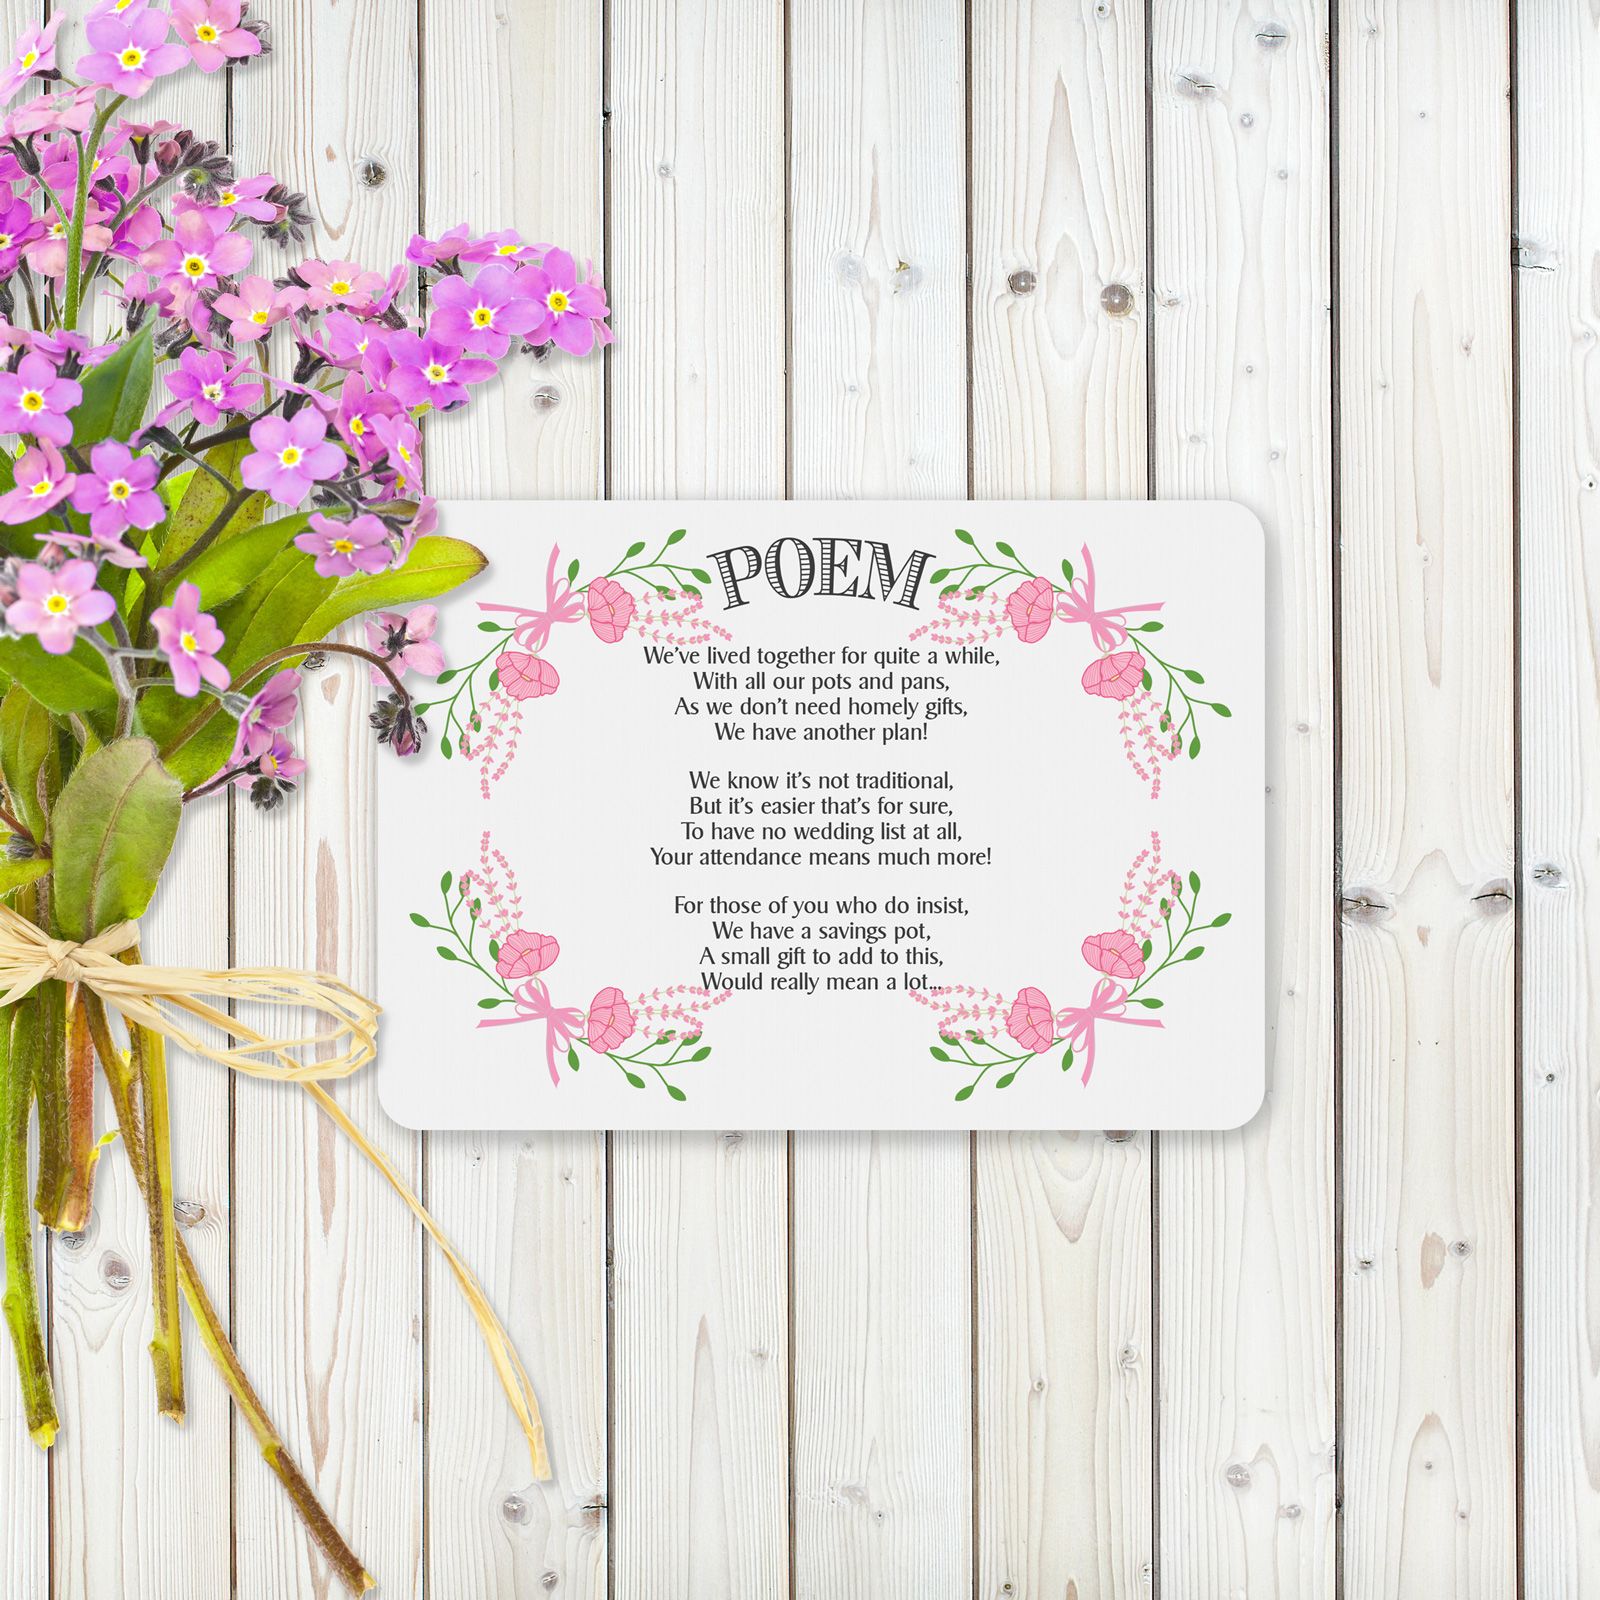 Floral Fantasy Pink on White Card - Poem Card